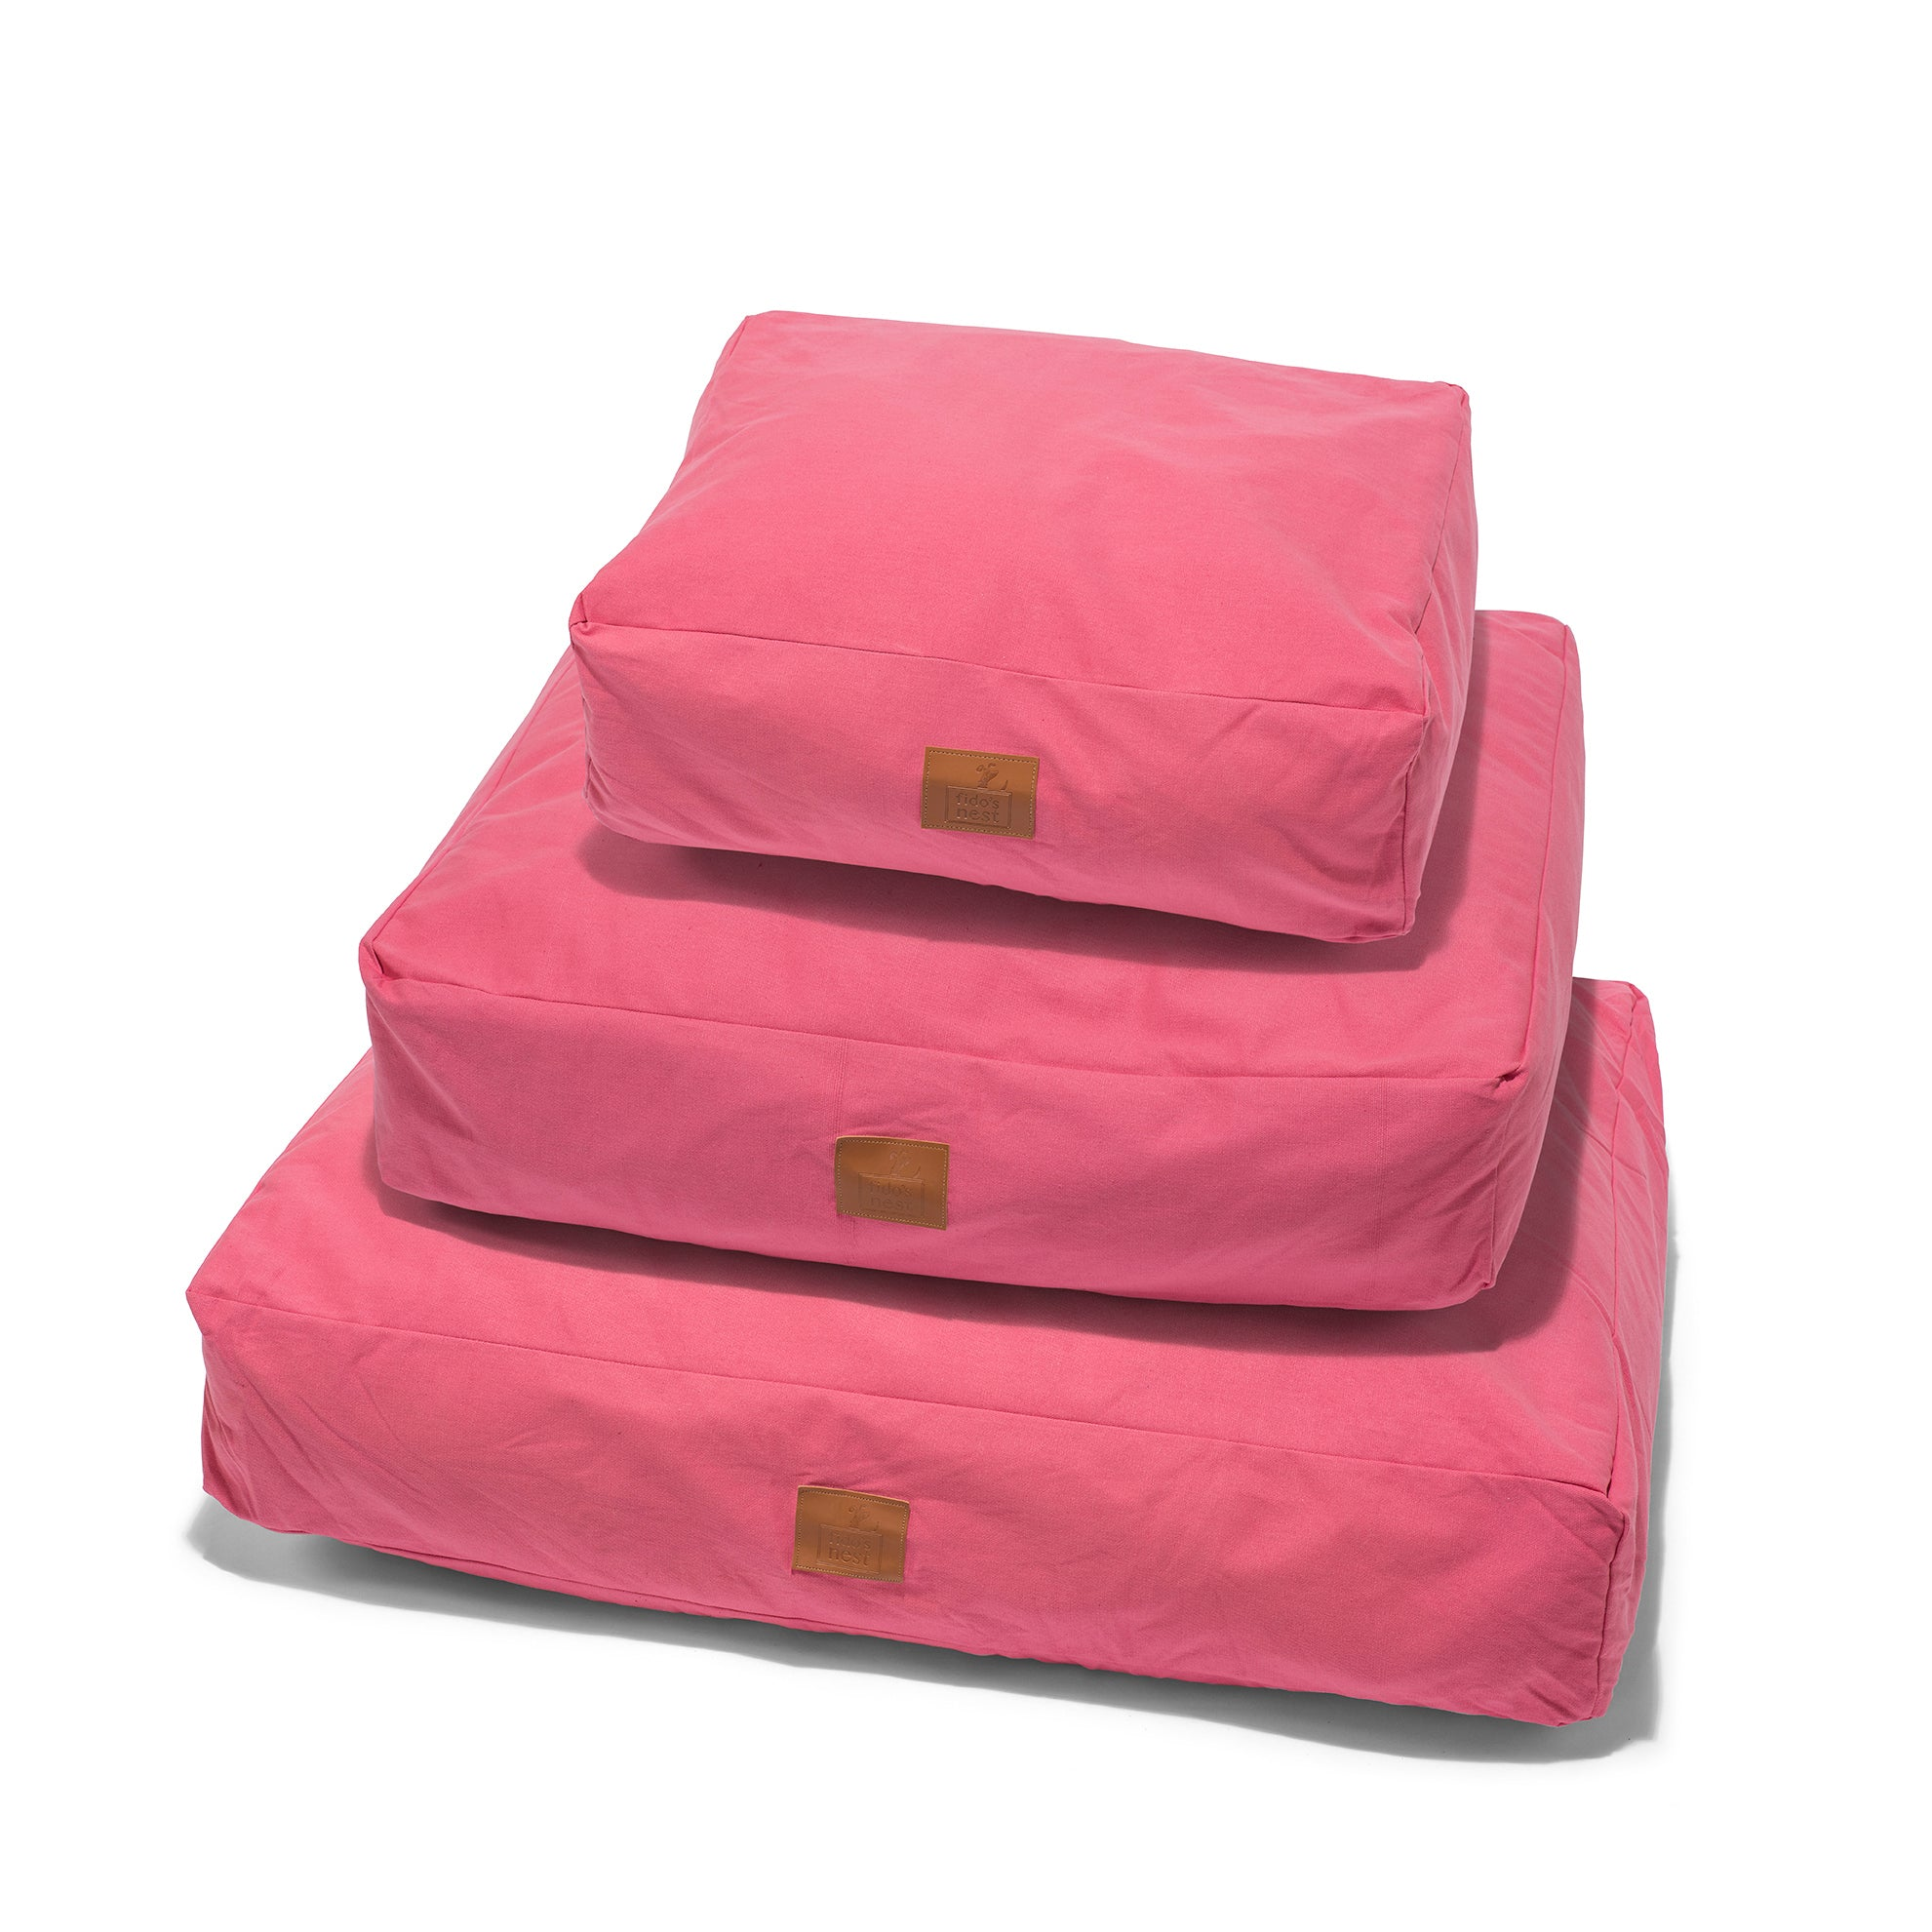 Lupo's Nest | Luxury modern pillow dog bed. Eco-friendly, anti-allergy pet bed, durable and machine washable. Choice of wool or hollow-fibre filling. In Pink.